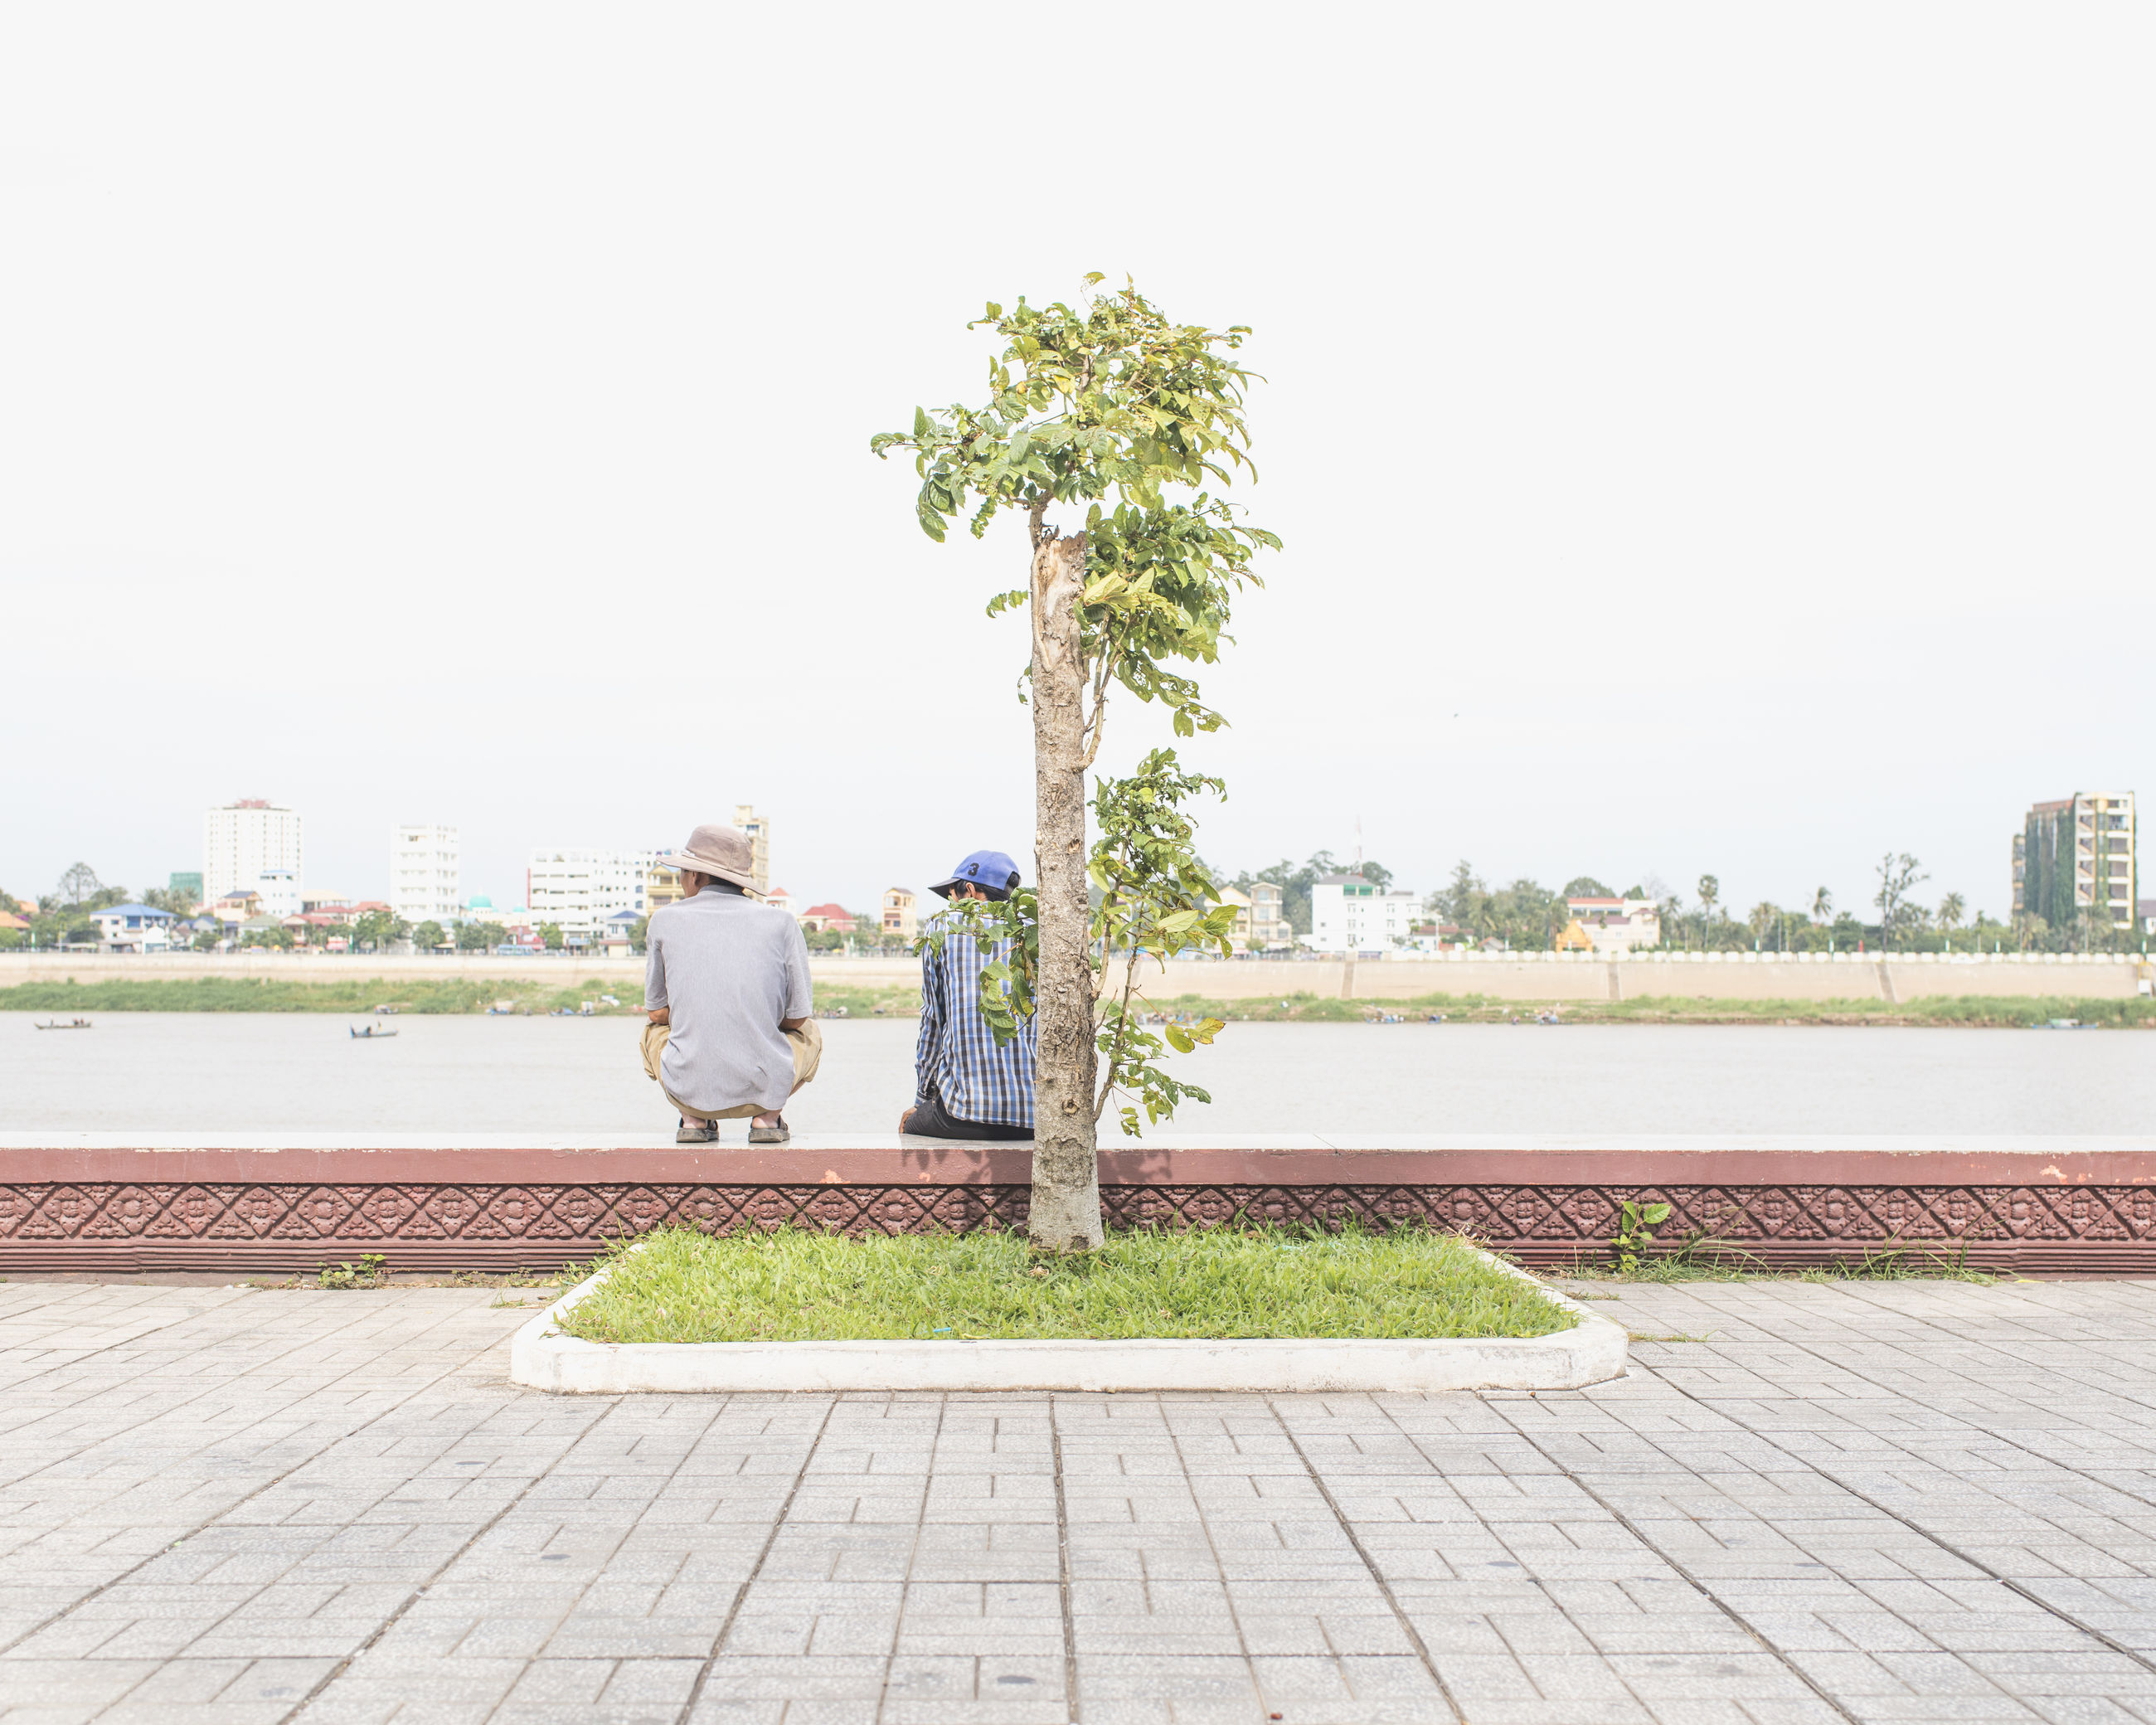 clear sky, copy space, tree, grass, building exterior, day, park - man made space, footpath, built structure, city, water, outdoors, bench, street, green color, plant, architecture, growth